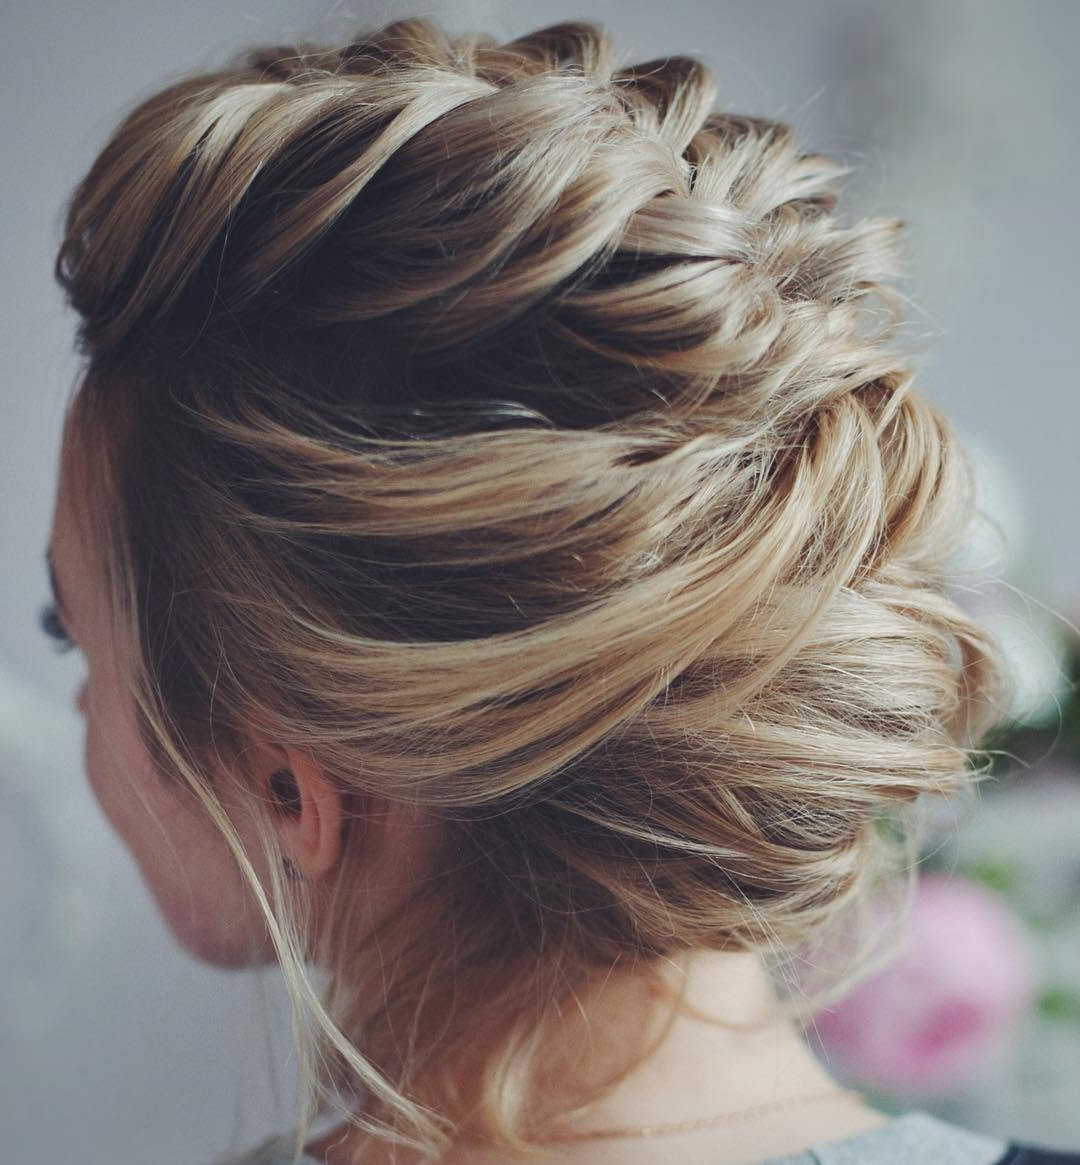 Fashionable Bohemian Braided Bun Bridal Hairstyles For Short Hair For 50 Hottest Prom Hairstyles For Short Hair (View 11 of 20)